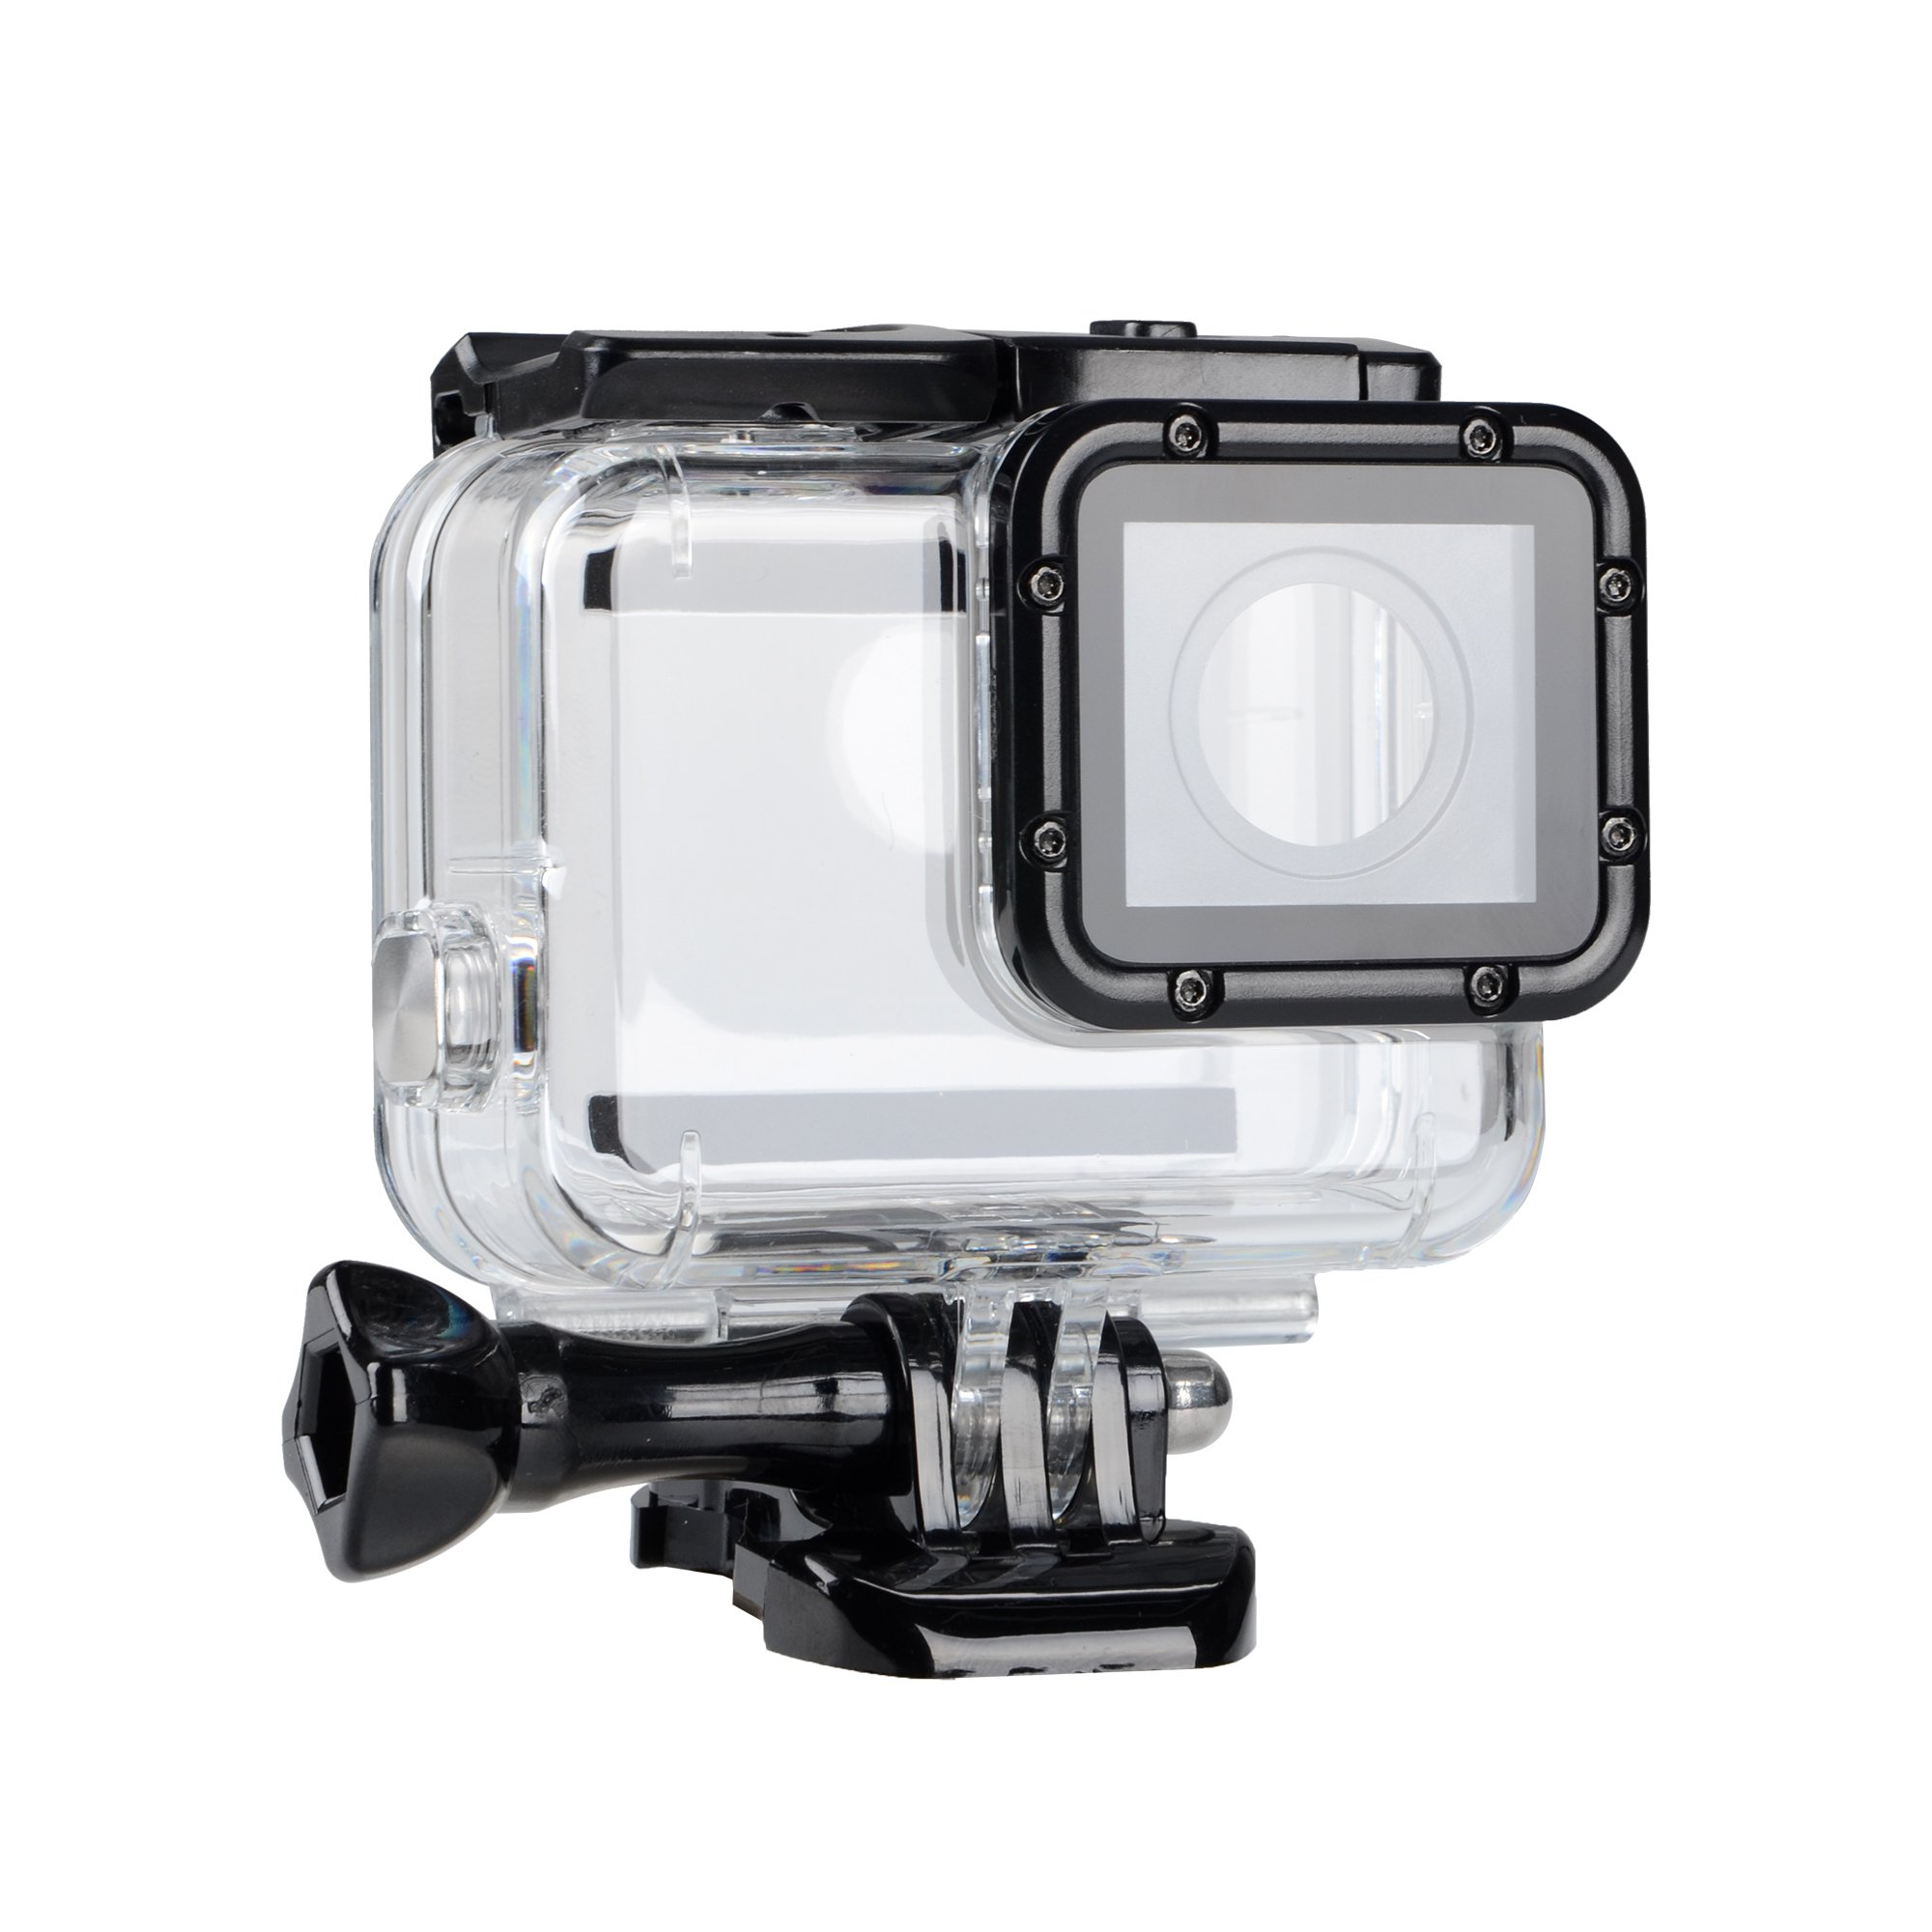 Suptig Replacement Waterproof Case Protective Housing for GoPro Hero 5 Outside Sport Camera For Underwater Use - Water Resistant up to 147ft (45m)